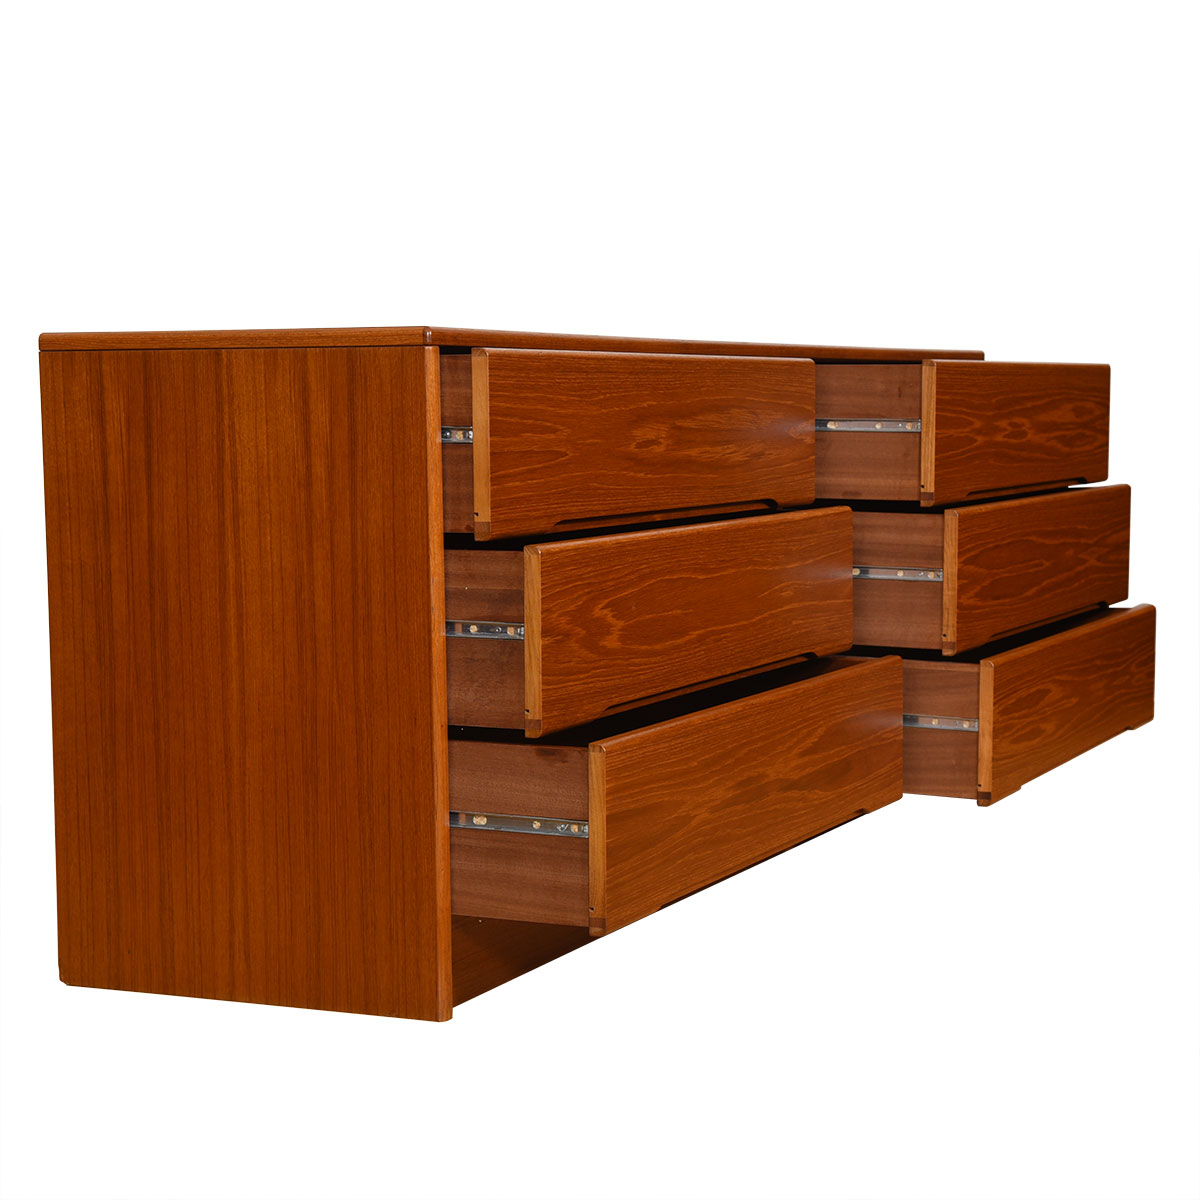 Danish Modern Teak 6-Drawer Long Dresser w/ Deep Drawers